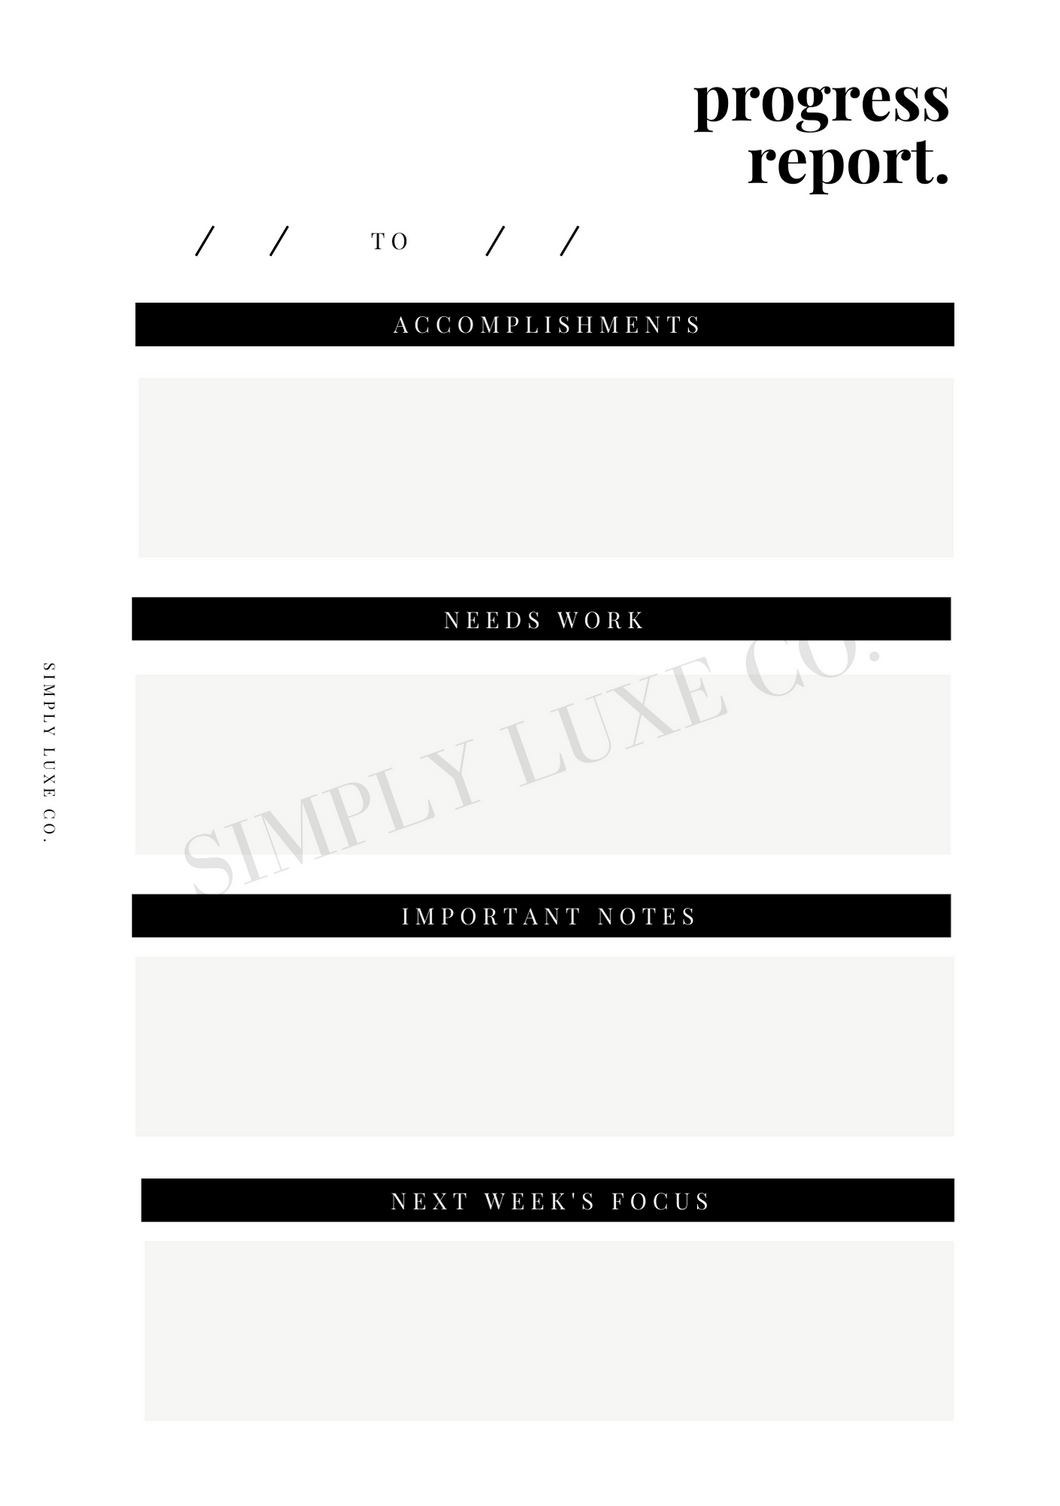 Progress Report Printable Inserts (NEW design)